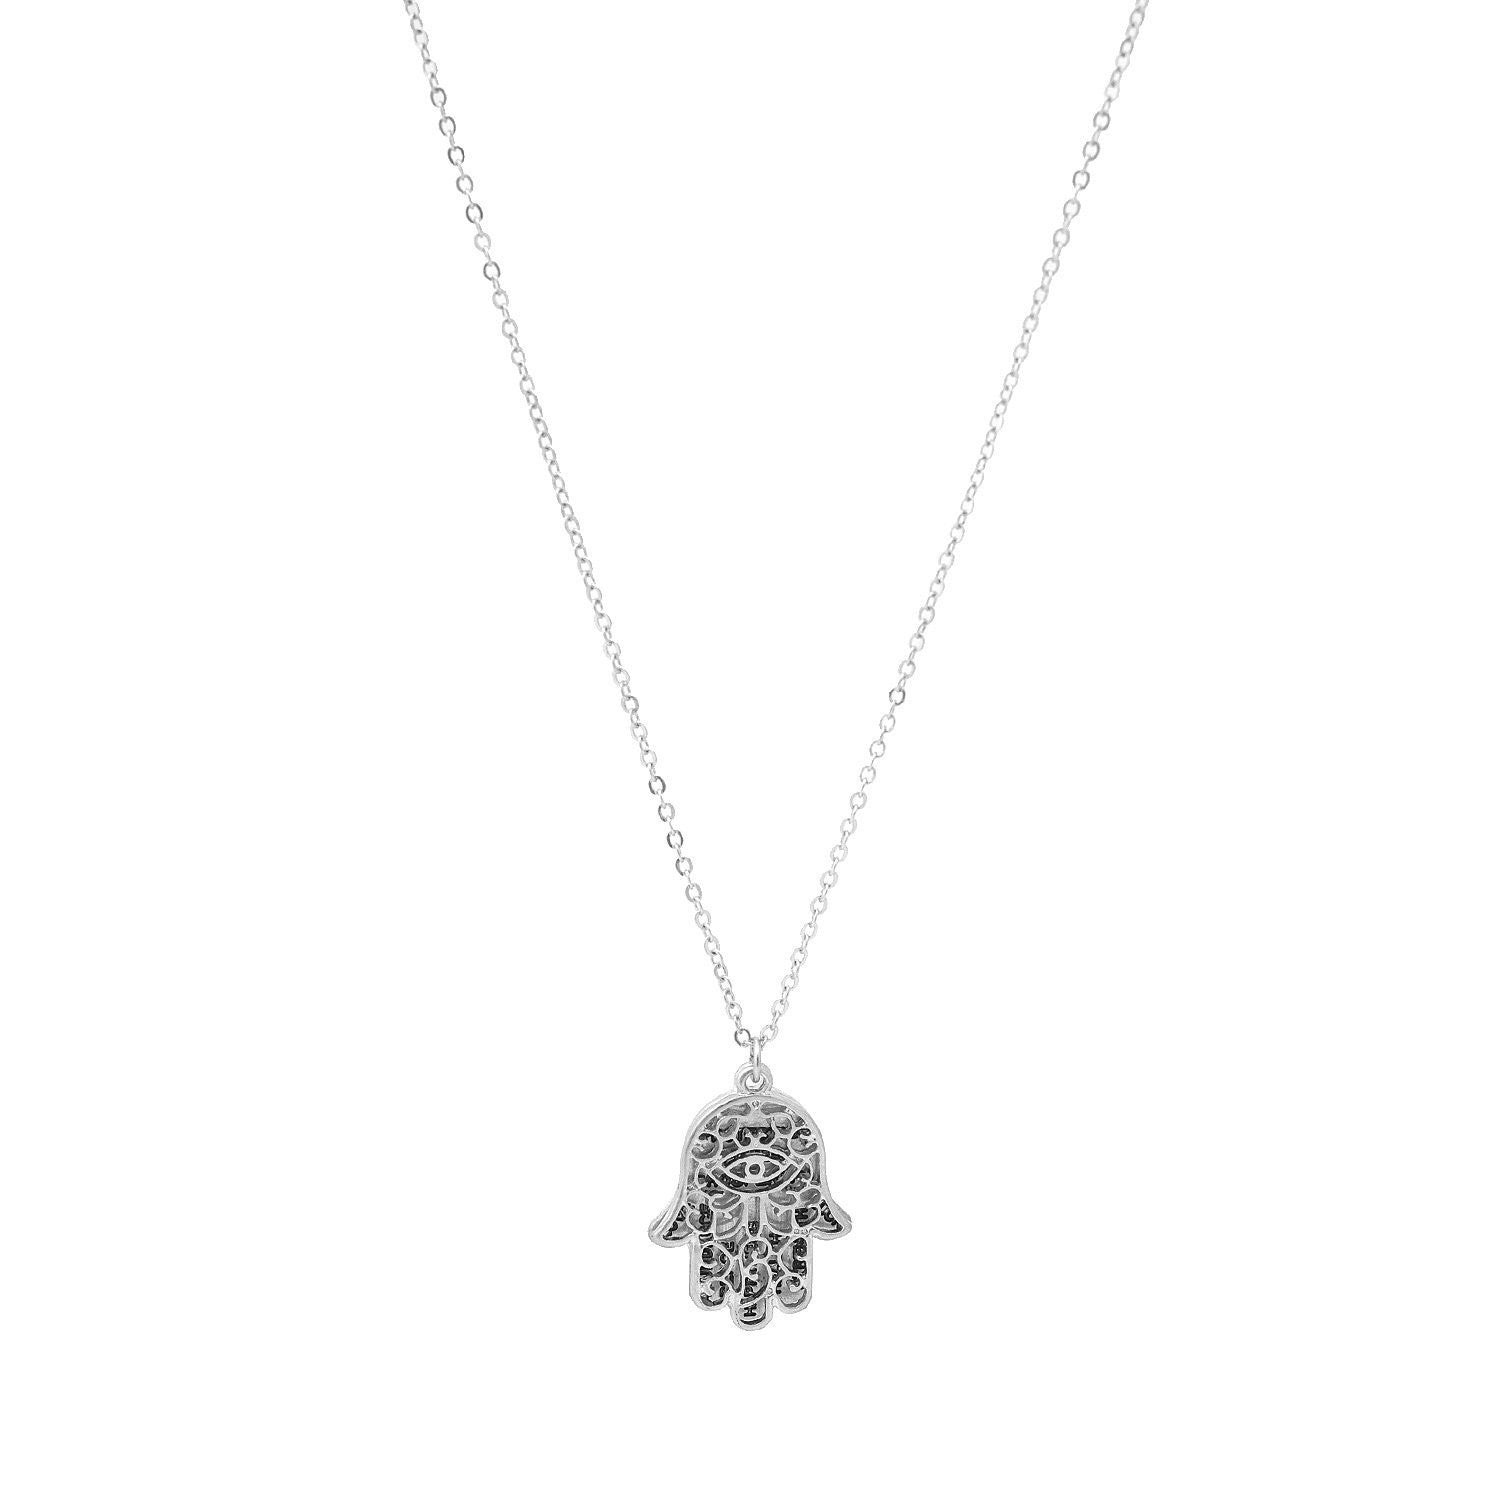 Two Piece Hammered Metal Hamsa Hand with Message Charm Necklace